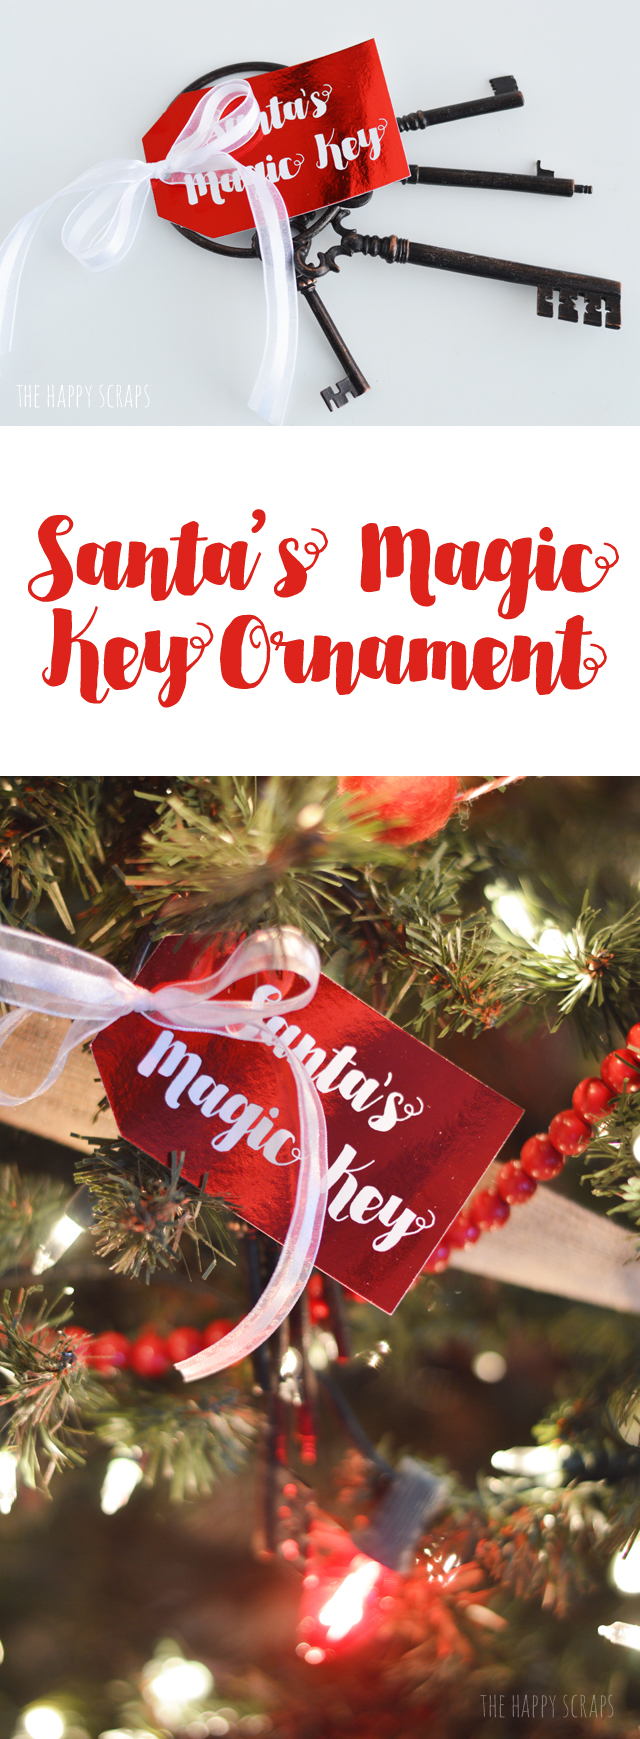 Create this Santa's Magic Key Ornament to add to your tree, or hang in your home. It's a fun project + Santa will need a key, if you don't have a chimney.